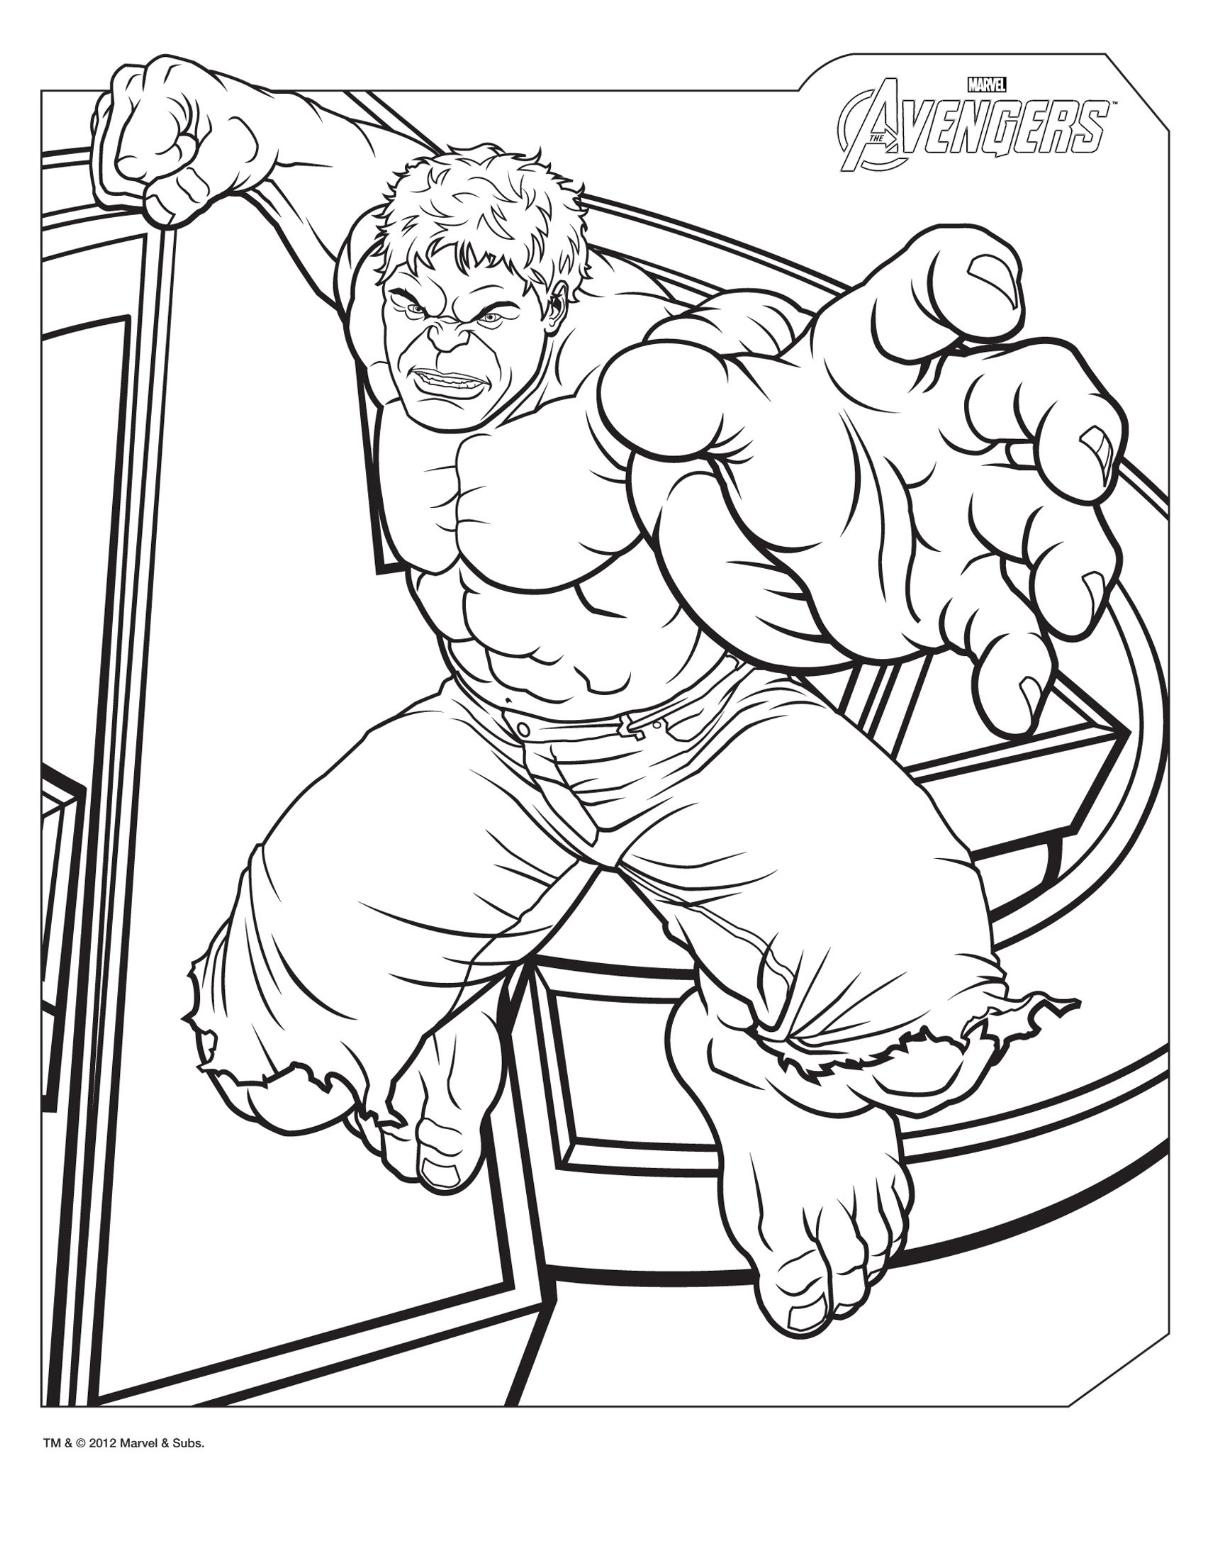 1205x1560 Incredible Hulk Coloring Pages Free Printable Hulk Coloring Pages